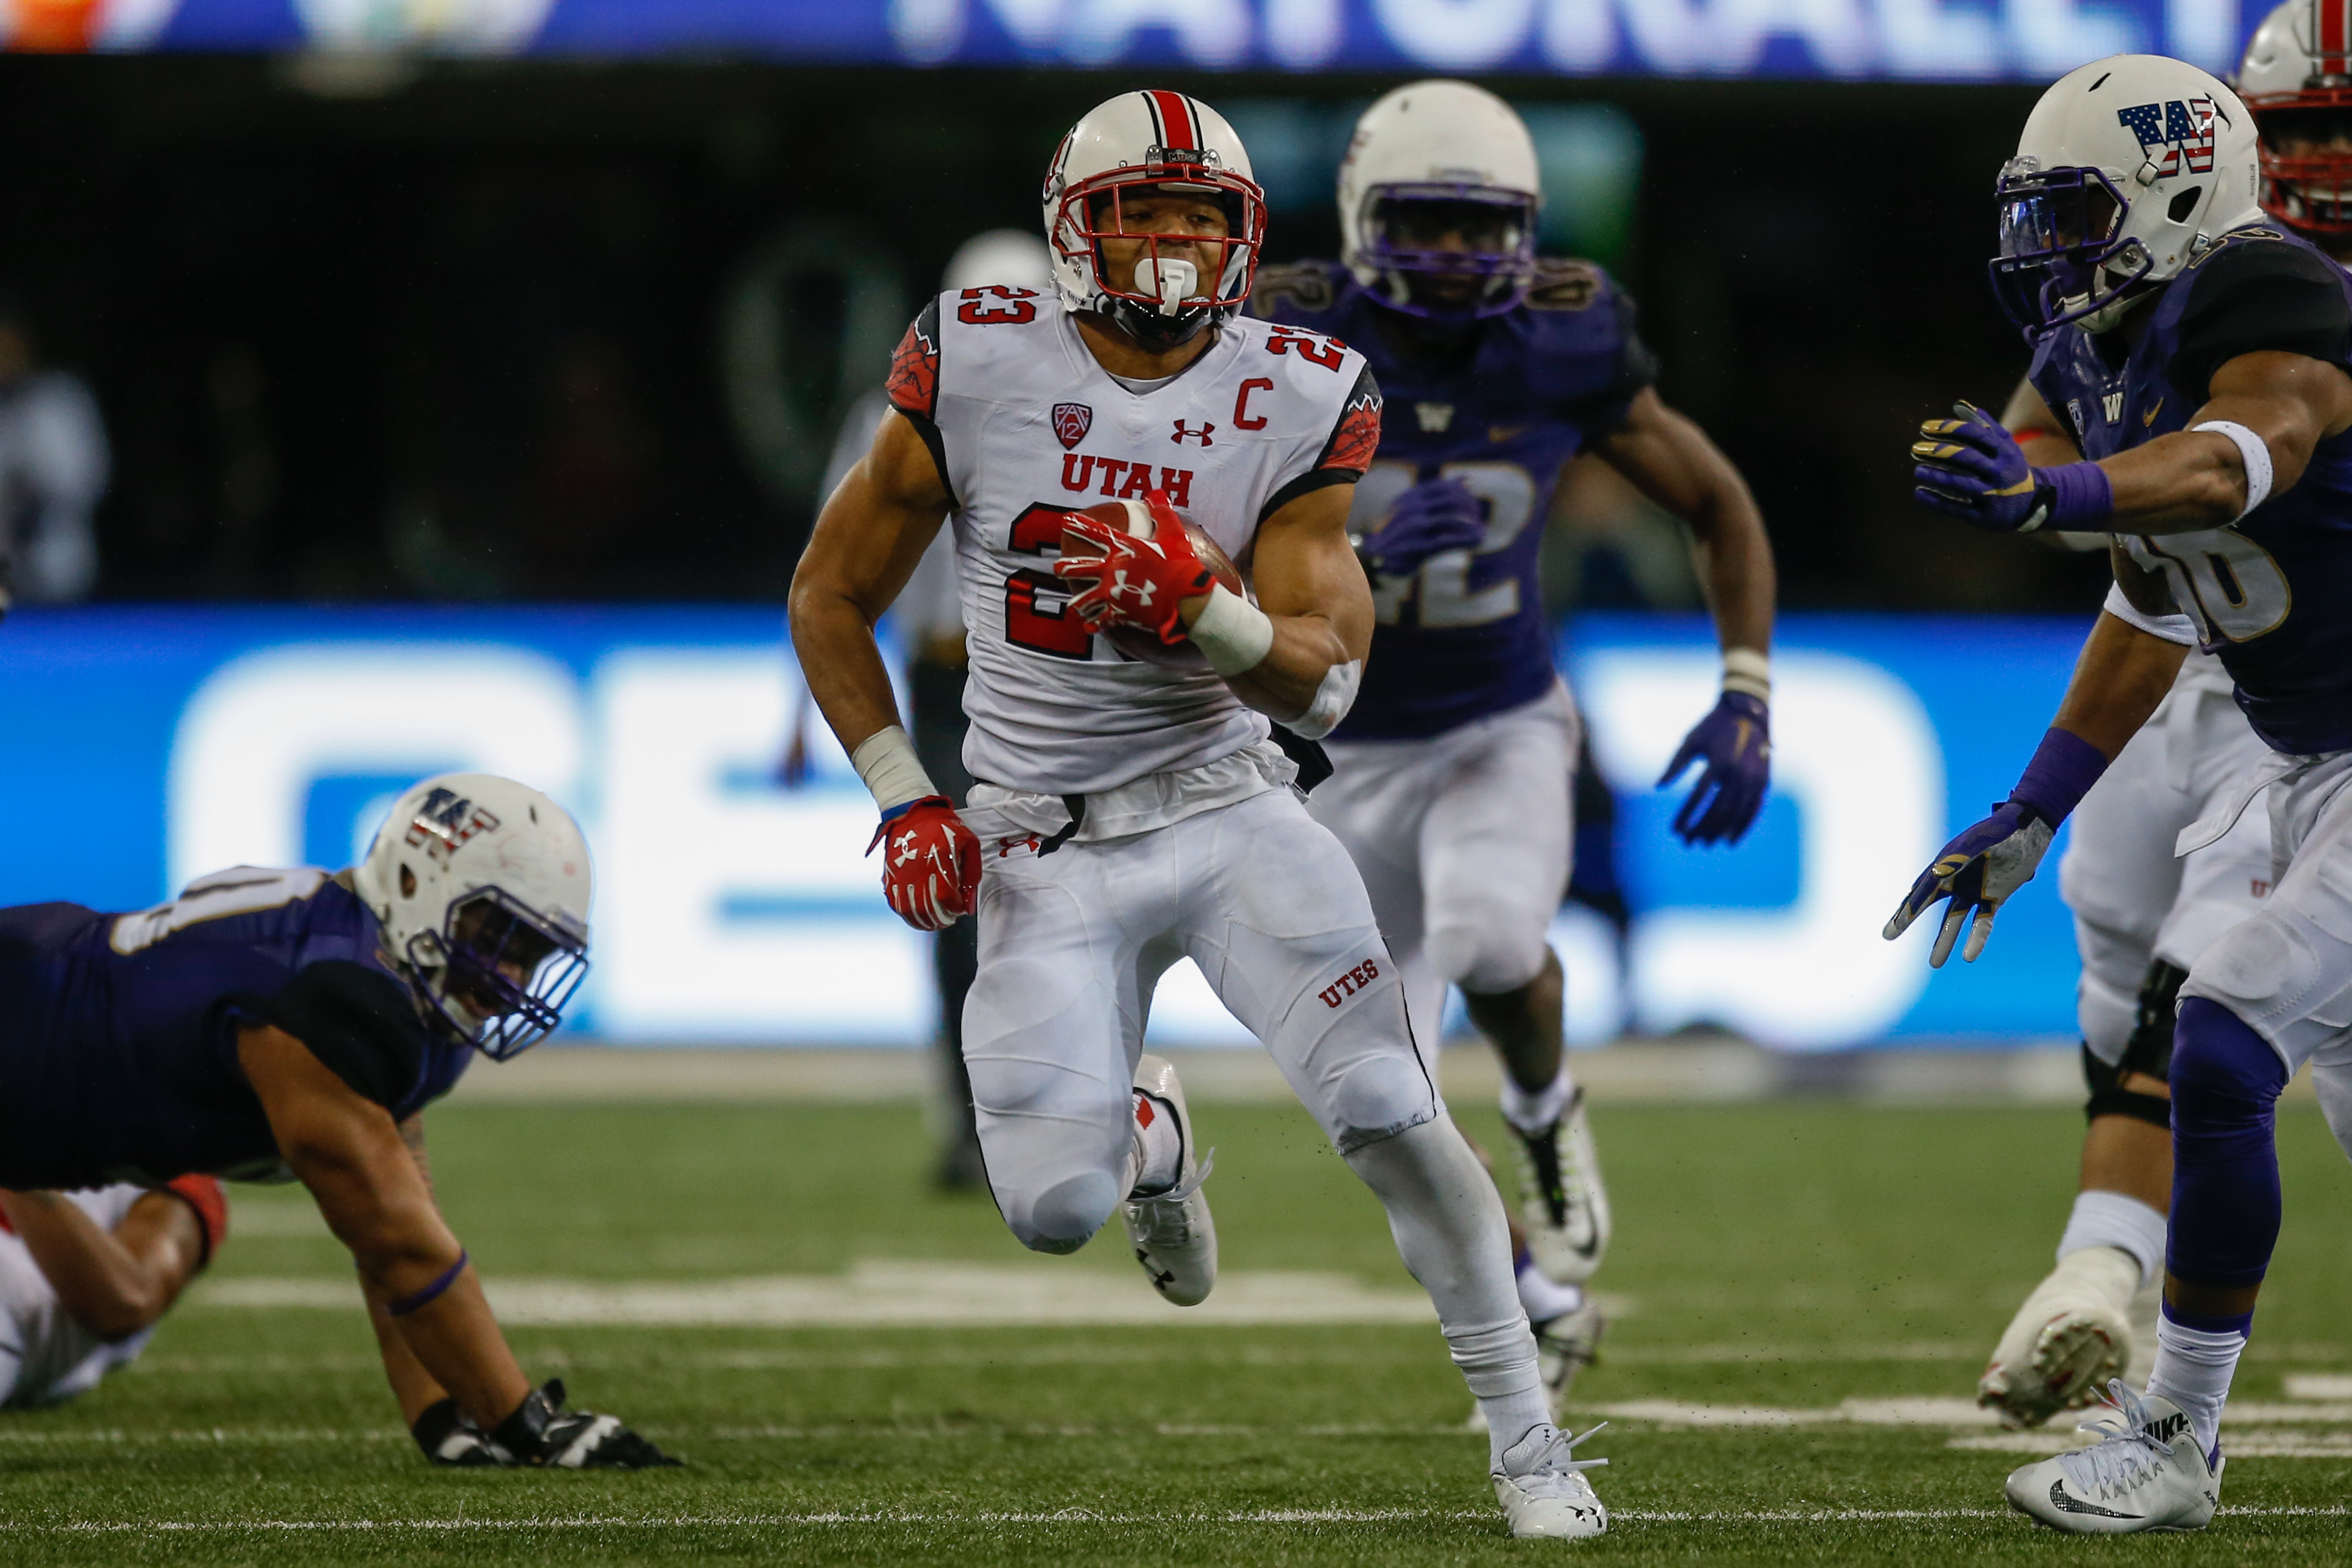 Running back Devontae Booker #23 of the Utah Utes rushes against the Washington Huskies on November 7, 2015 at Husky Stadium in Seattle, Washington. (Photo by Otto Greule Jr/Getty Images)